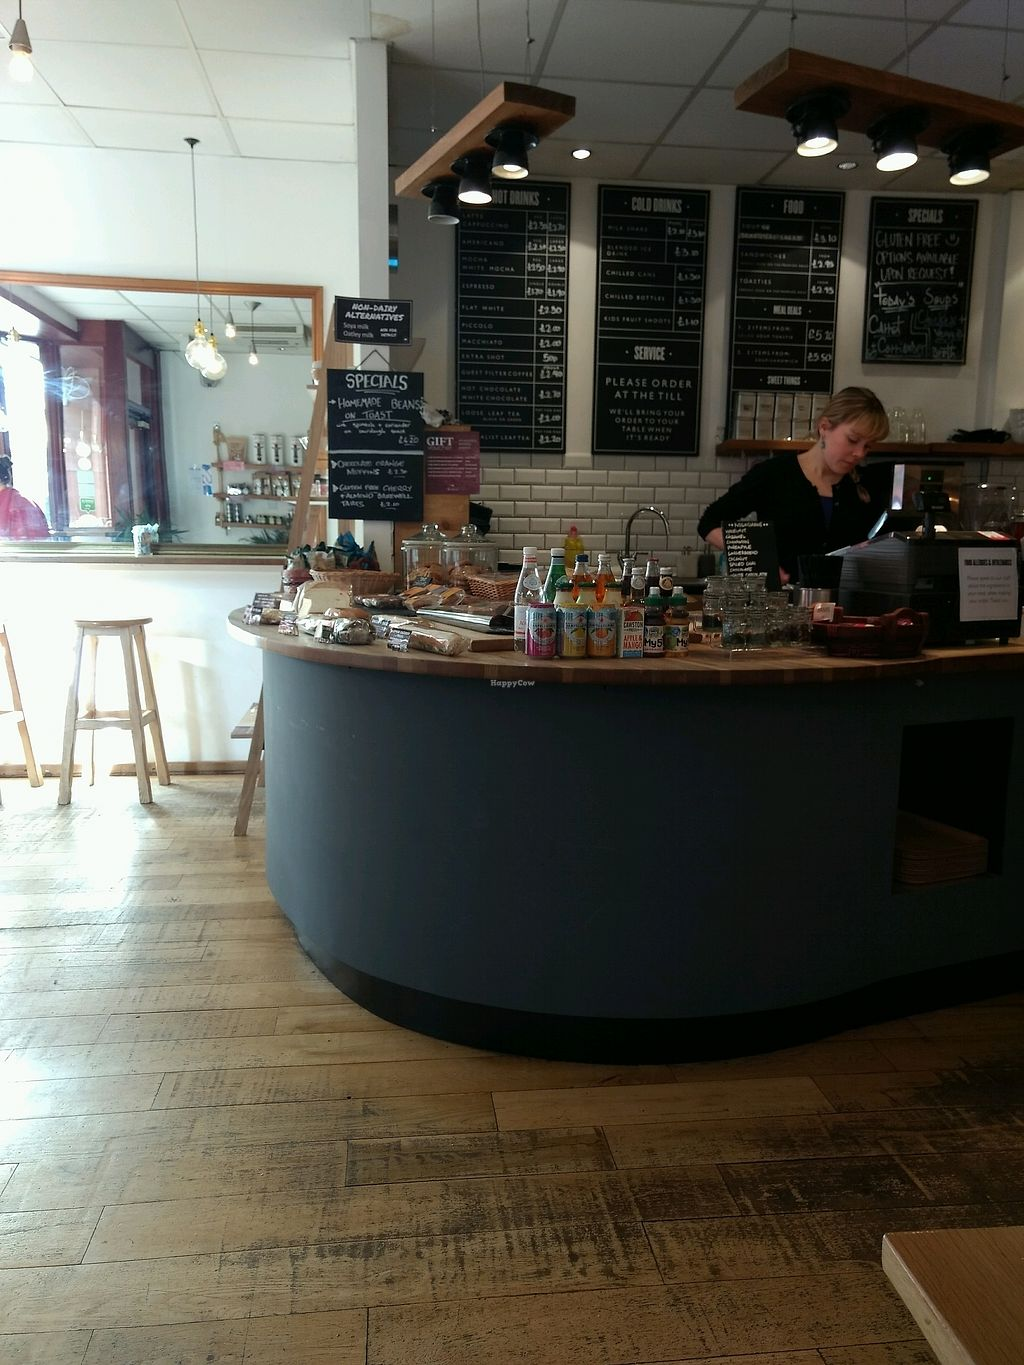 """Photo of Kings Coffee and Books  by <a href=""""/members/profile/craigmc"""">craigmc</a> <br/>cofee <br/> February 9, 2018  - <a href='/contact/abuse/image/101807/356763'>Report</a>"""